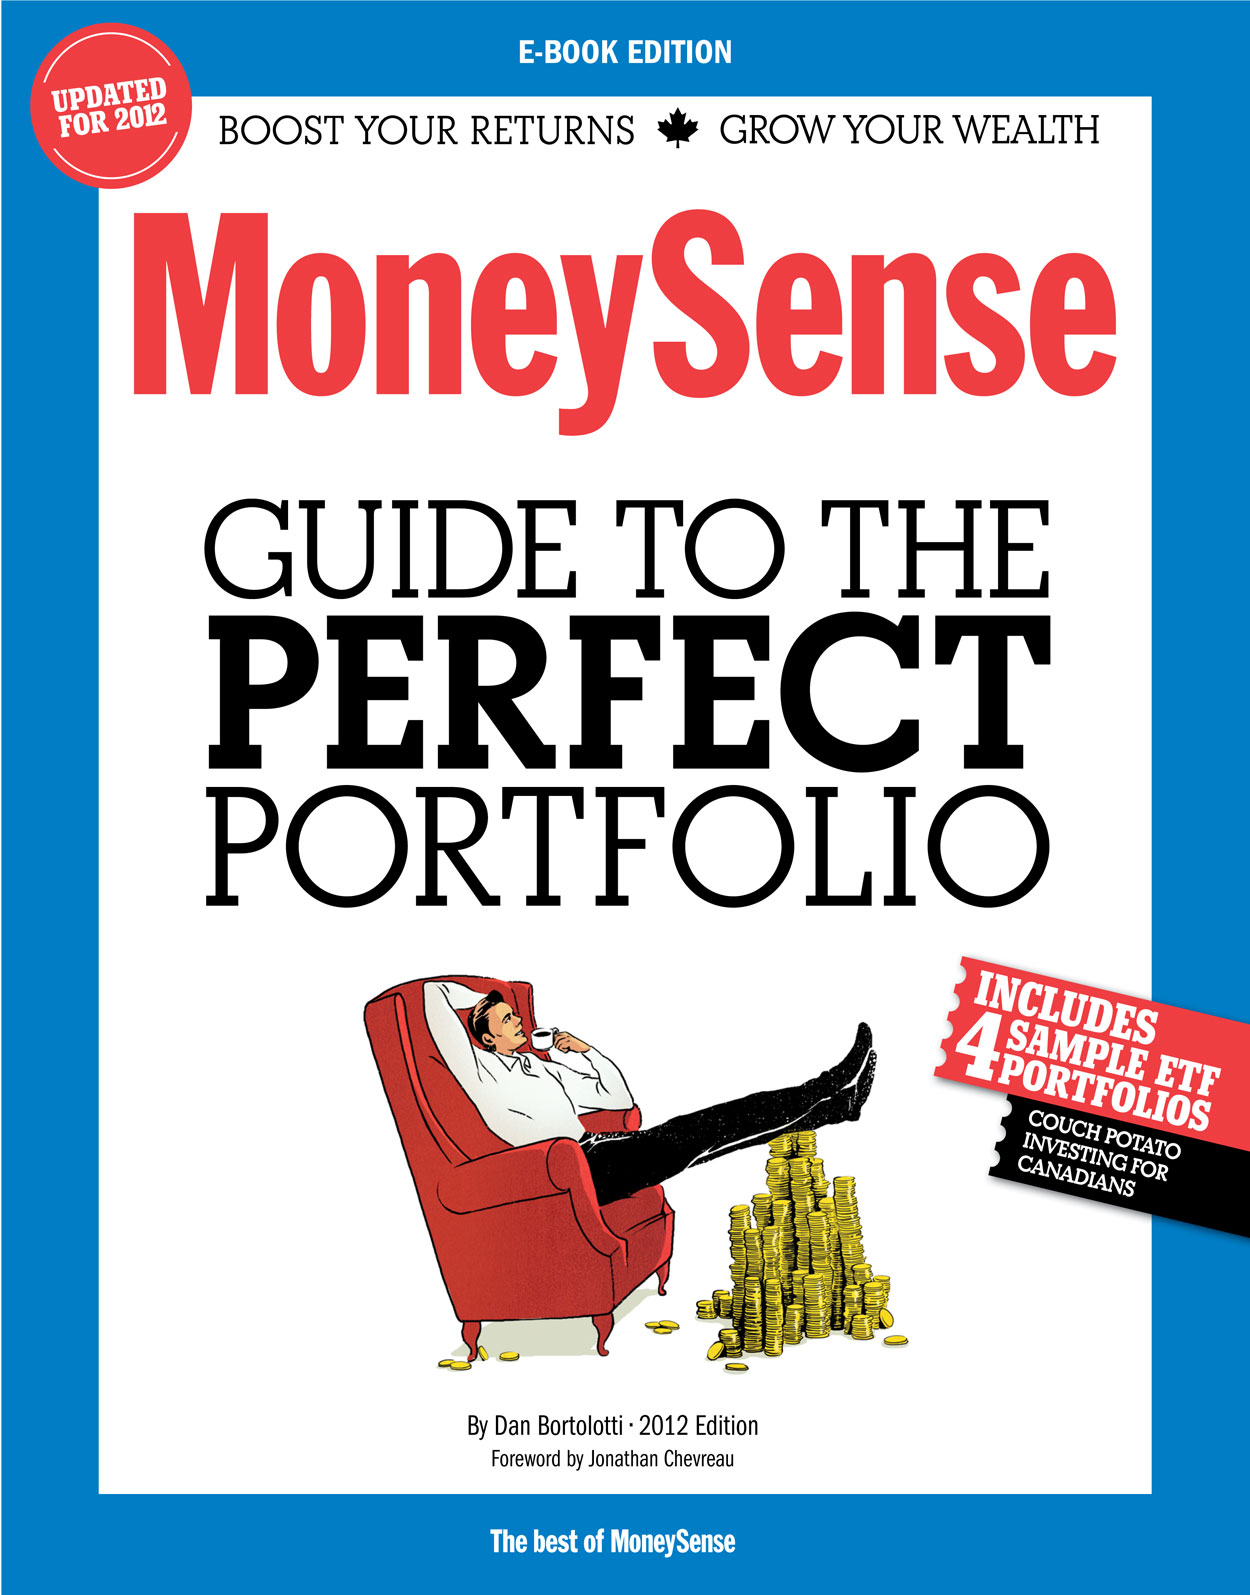 The MoneySense Guide to the Perfect Portfolio By: Dan Bortolotti